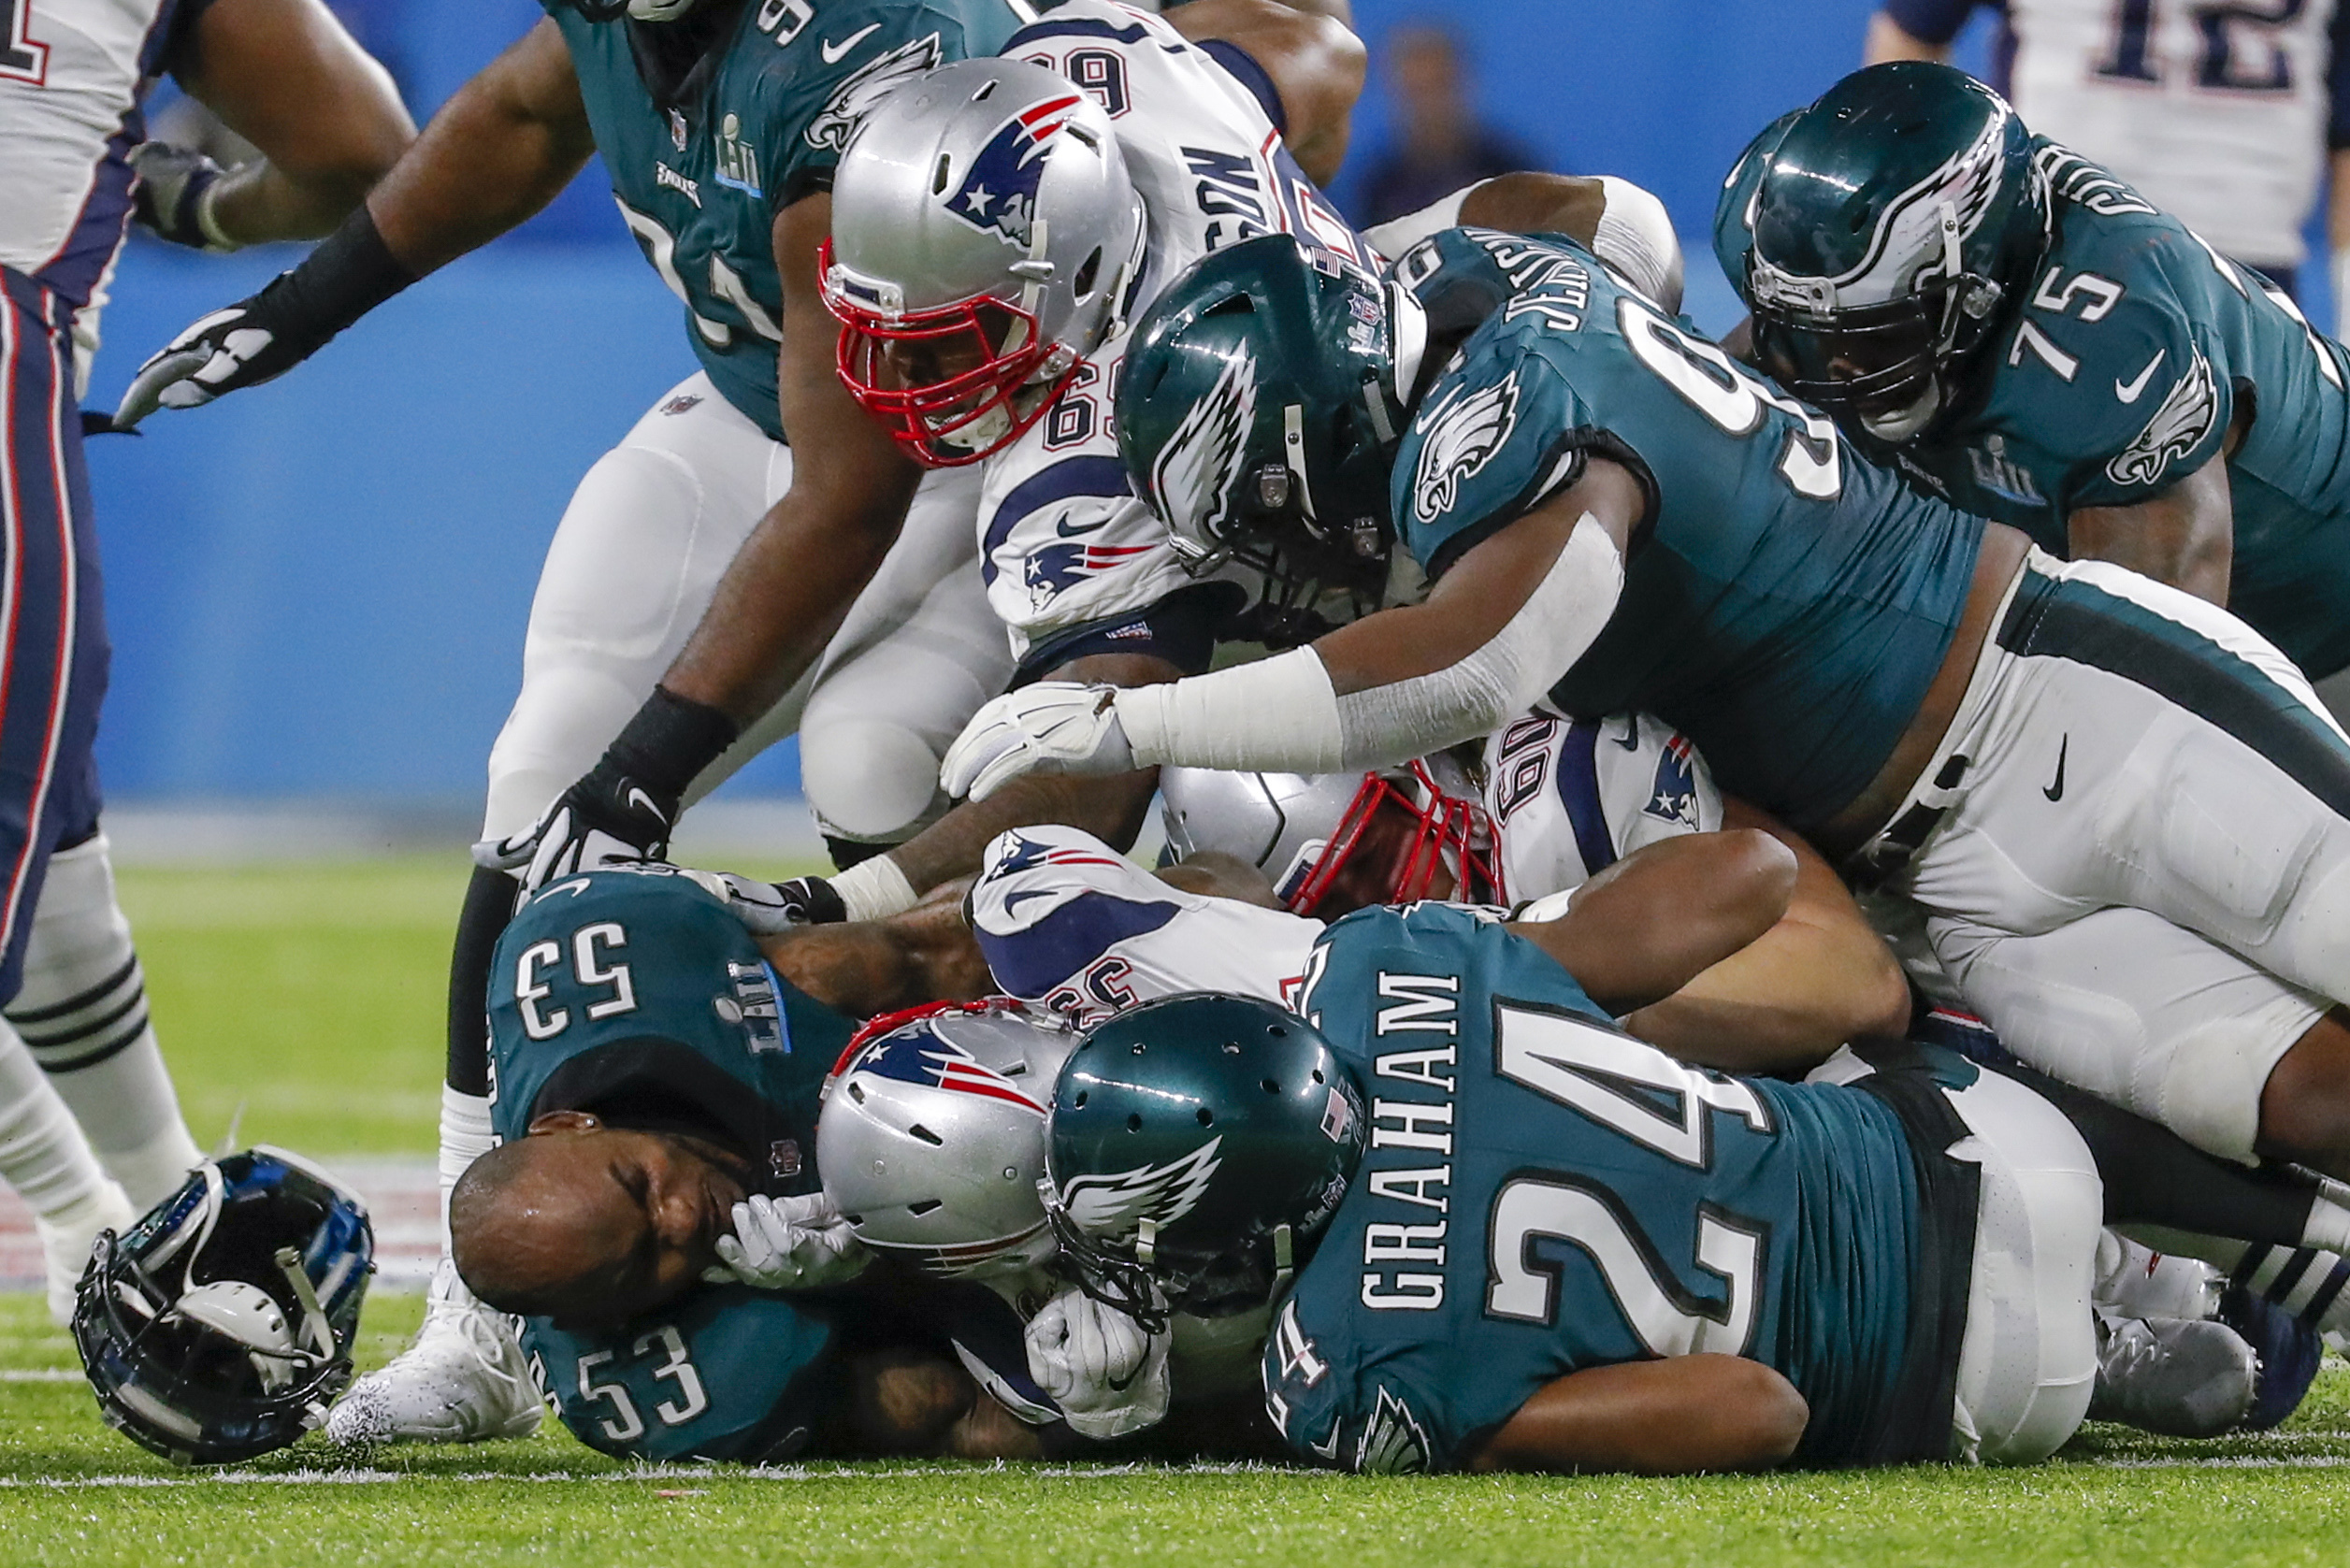 "<div class=""meta image-caption""><div class=""origin-logo origin-image ap""><span>AP</span></div><span class=""caption-text"">Philadelphia Eagles outside linebacker Nigel Bradham (53), loses his helmet as players pile up on a play during the first half of the NFL Super Bowl 52 football game. (AP Photo/Charlie Neibergall)</span></div>"